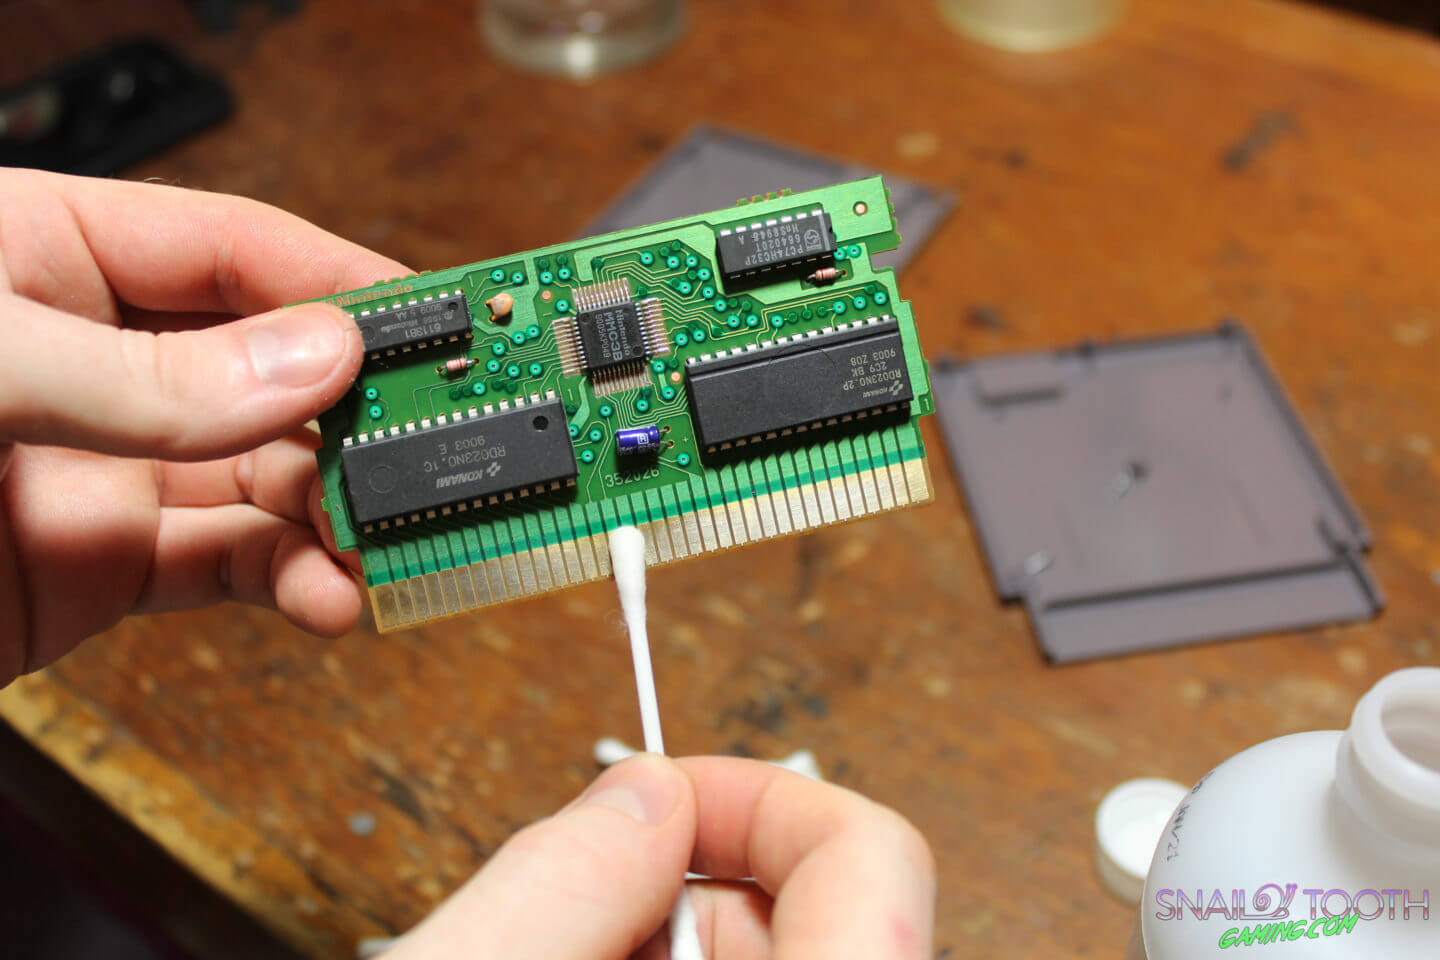 How to Clean Video Game Cartridges | Snail Tooth Gaming